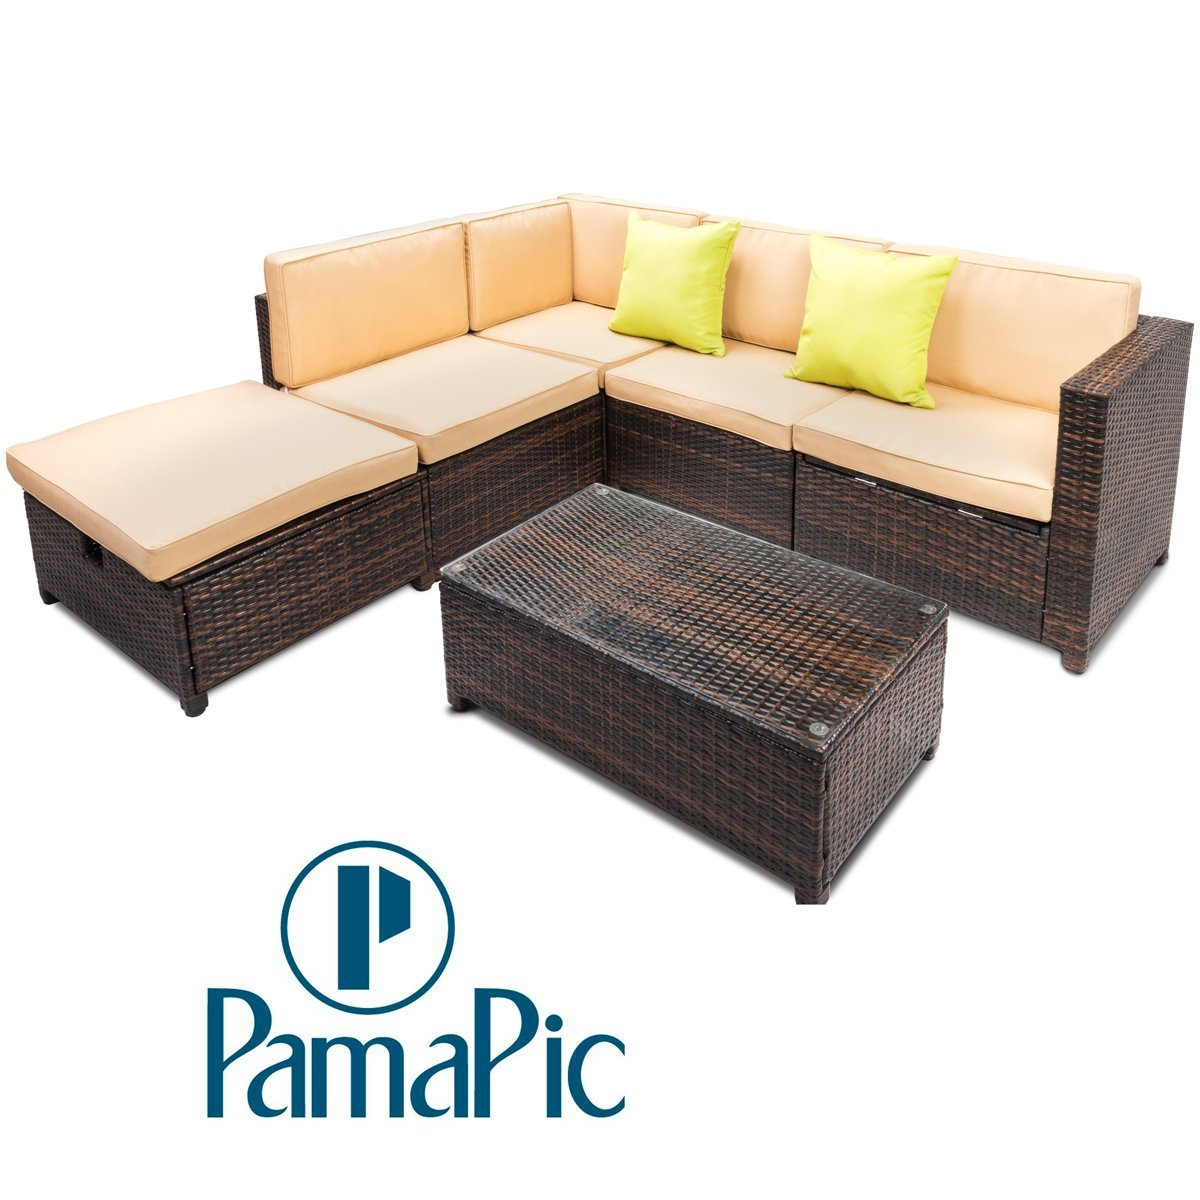 Outdoor Patio Furniture With Storage.Buy Pamapic 6pcs Outdoor Patio Furniture Set Adjustable Reclining